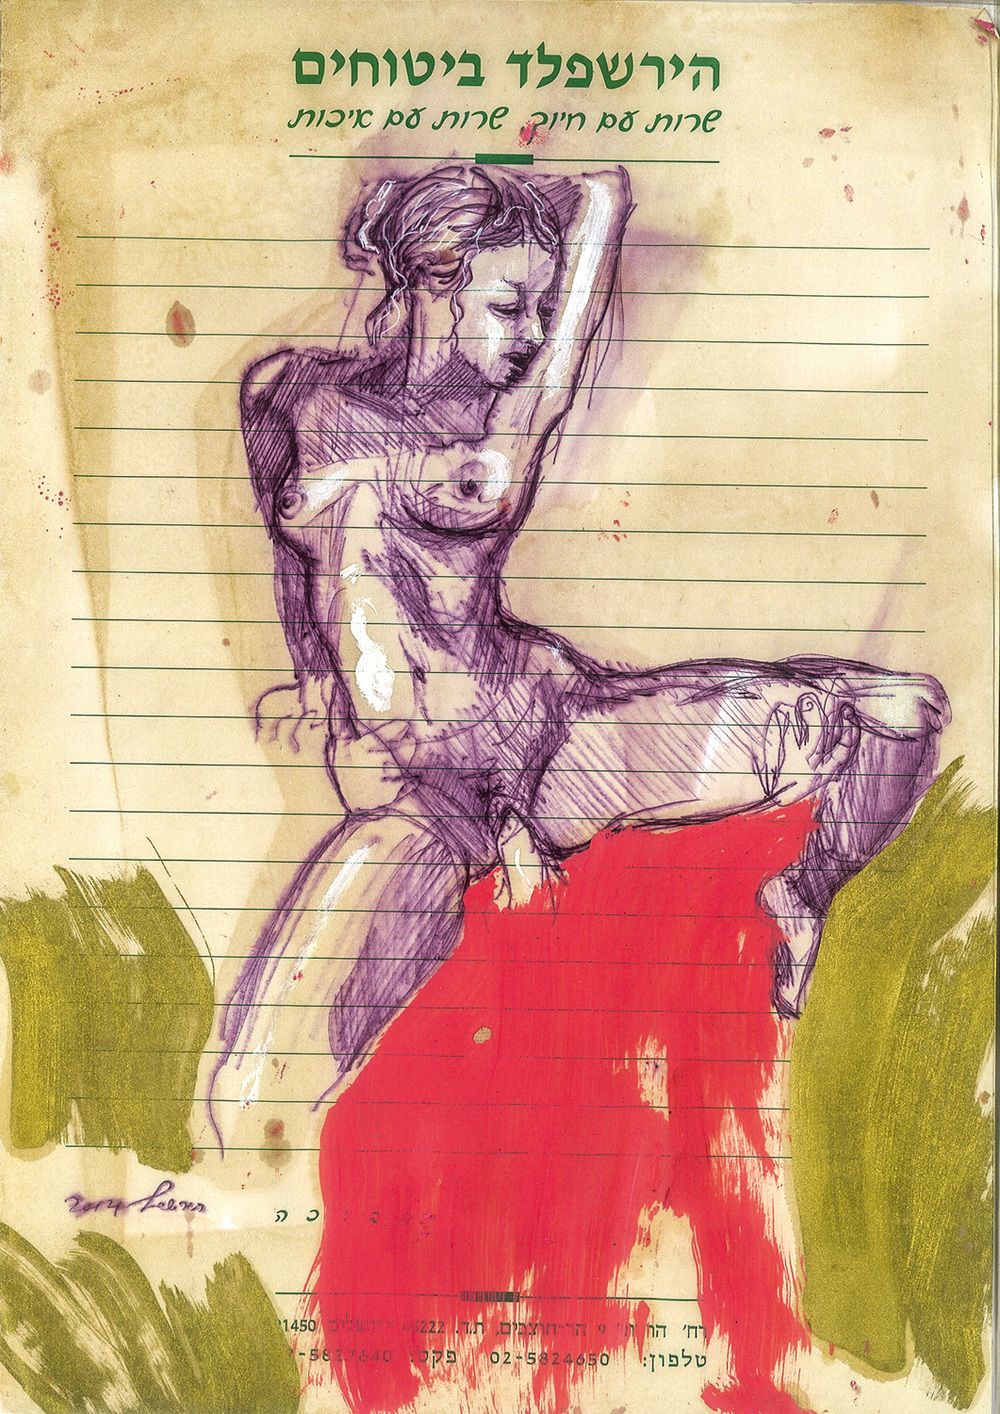 Lust (Poetry Book paintings)